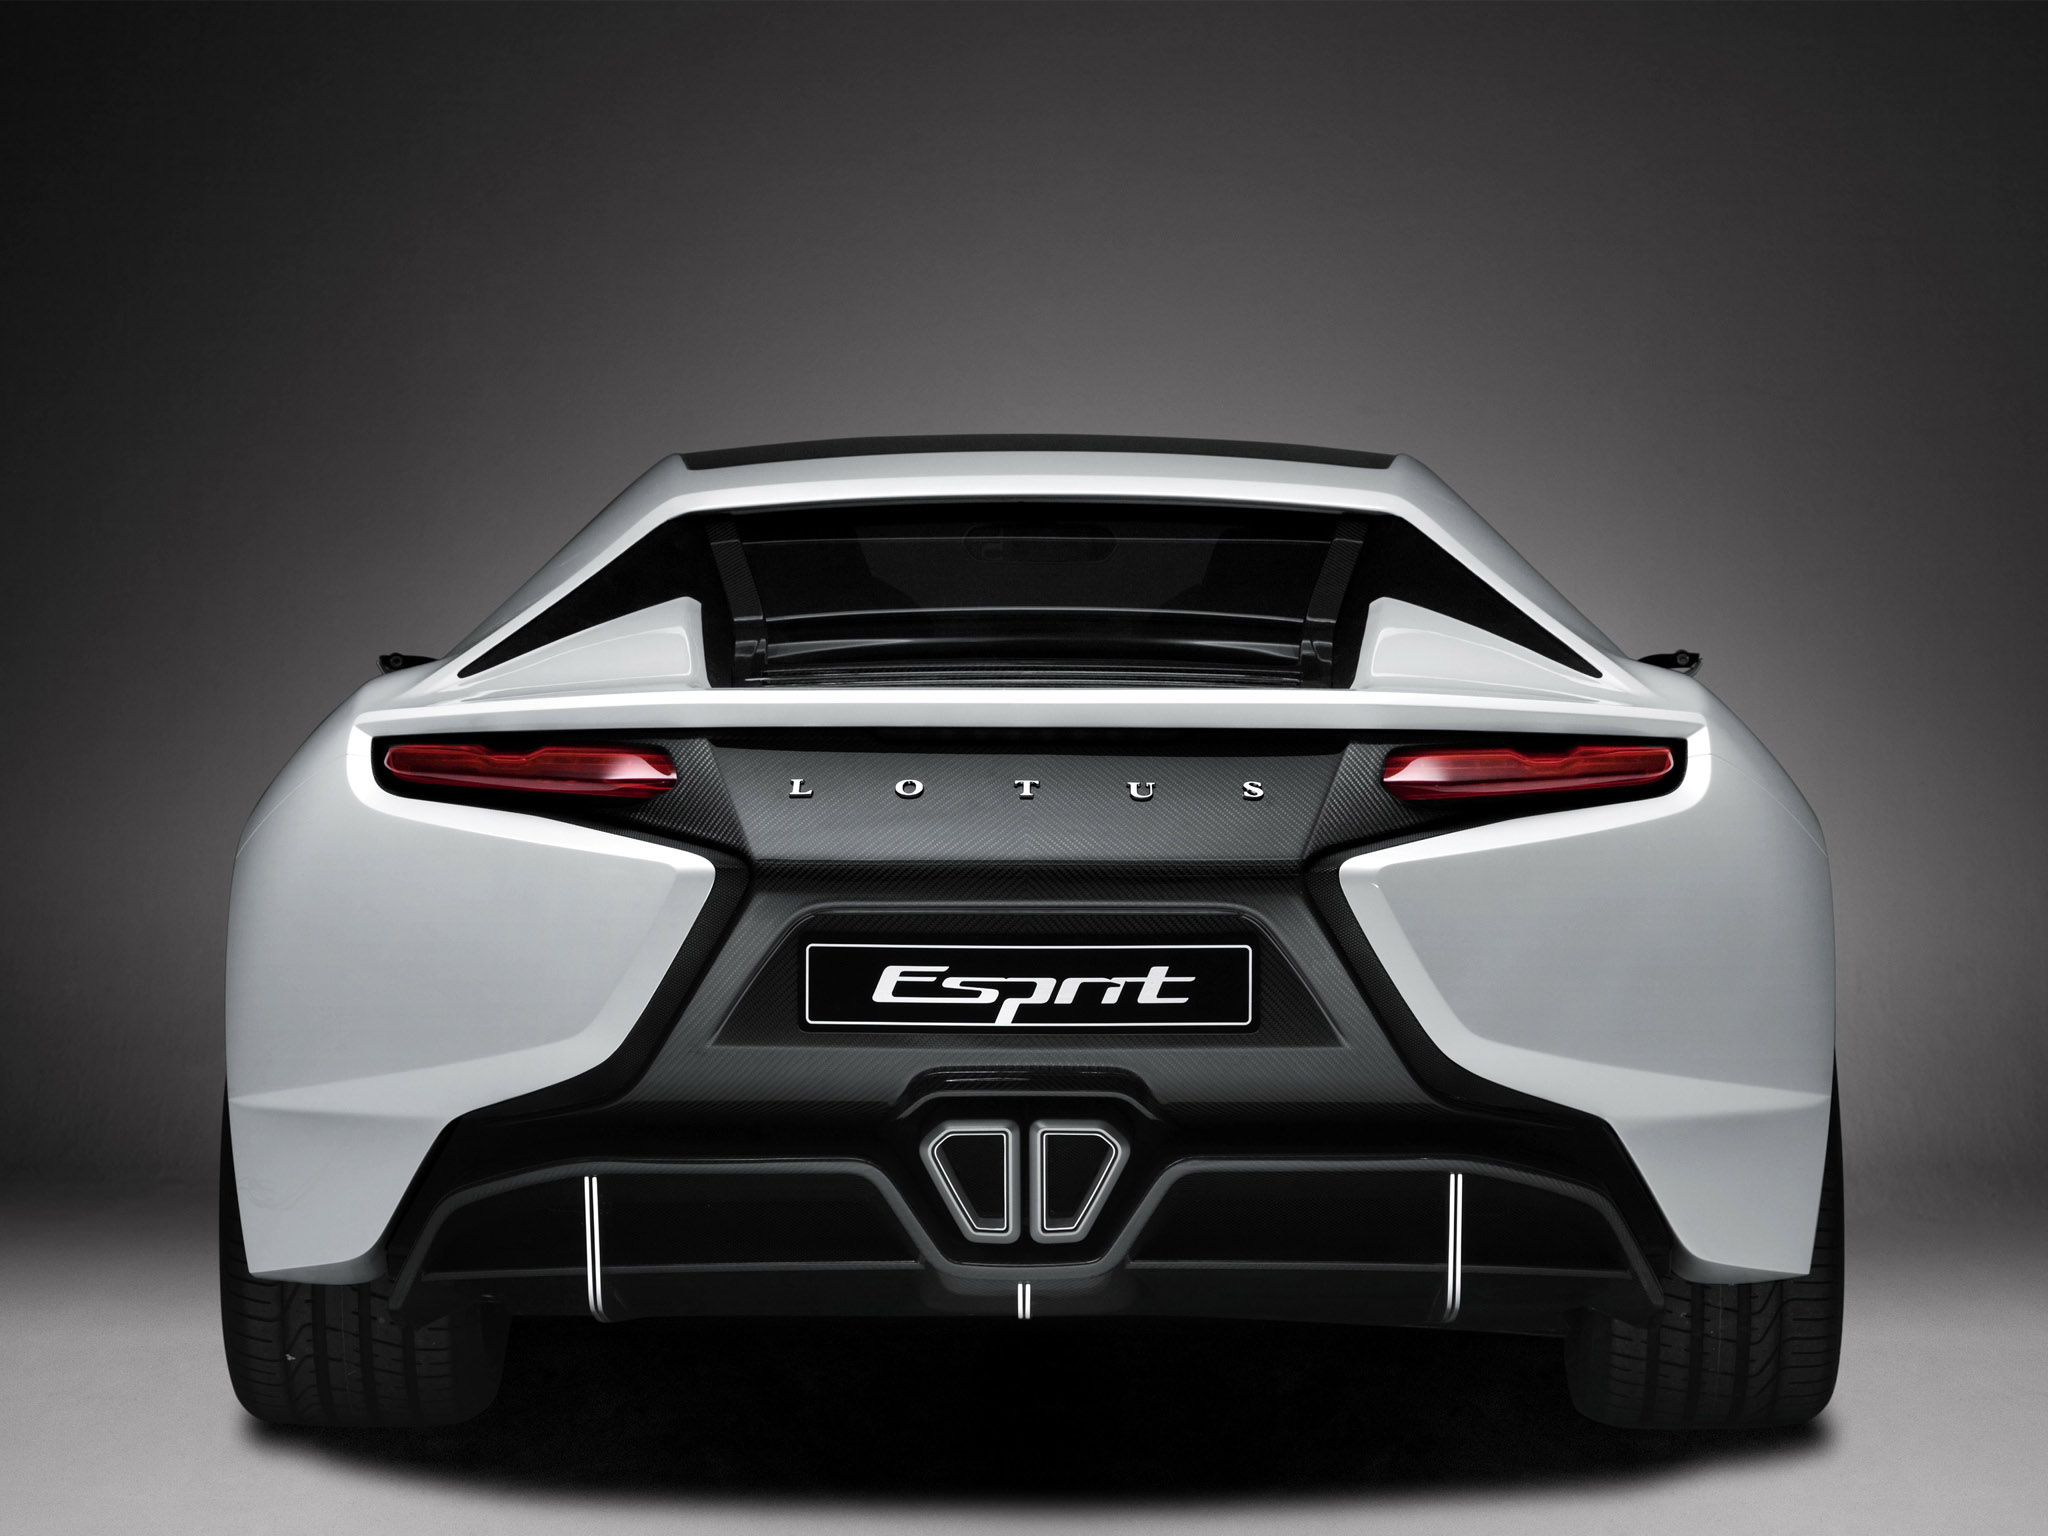 Lotus Esprit Concept Supercar Supercars G Wallpaper